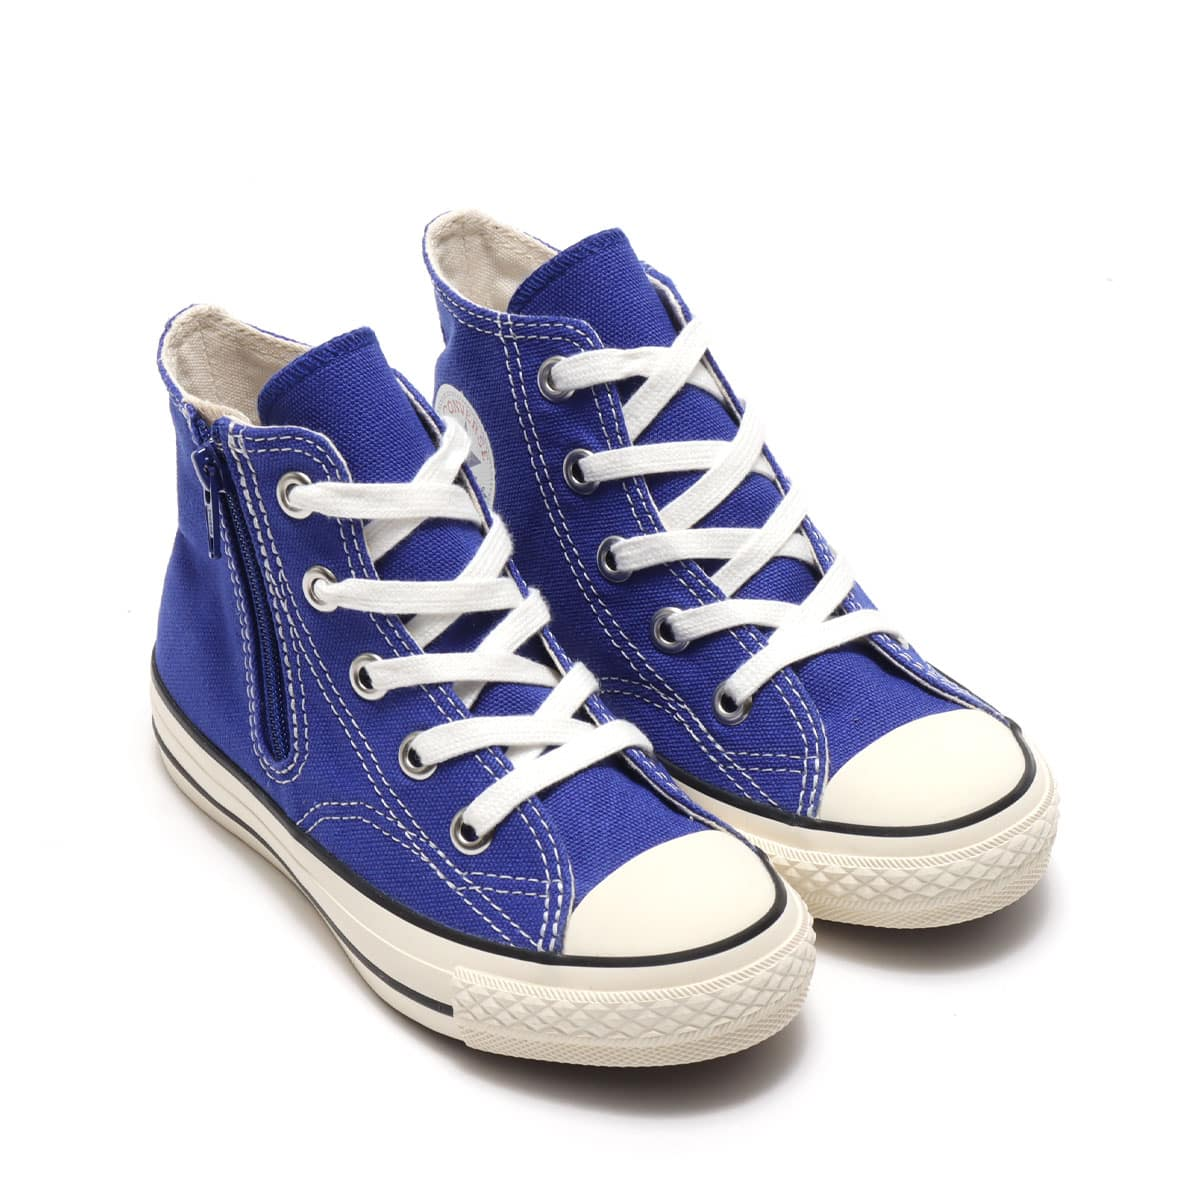 CONVERSE CHILD ALL STAR N 70 Z HI BLUE 21SS-I_photo_large